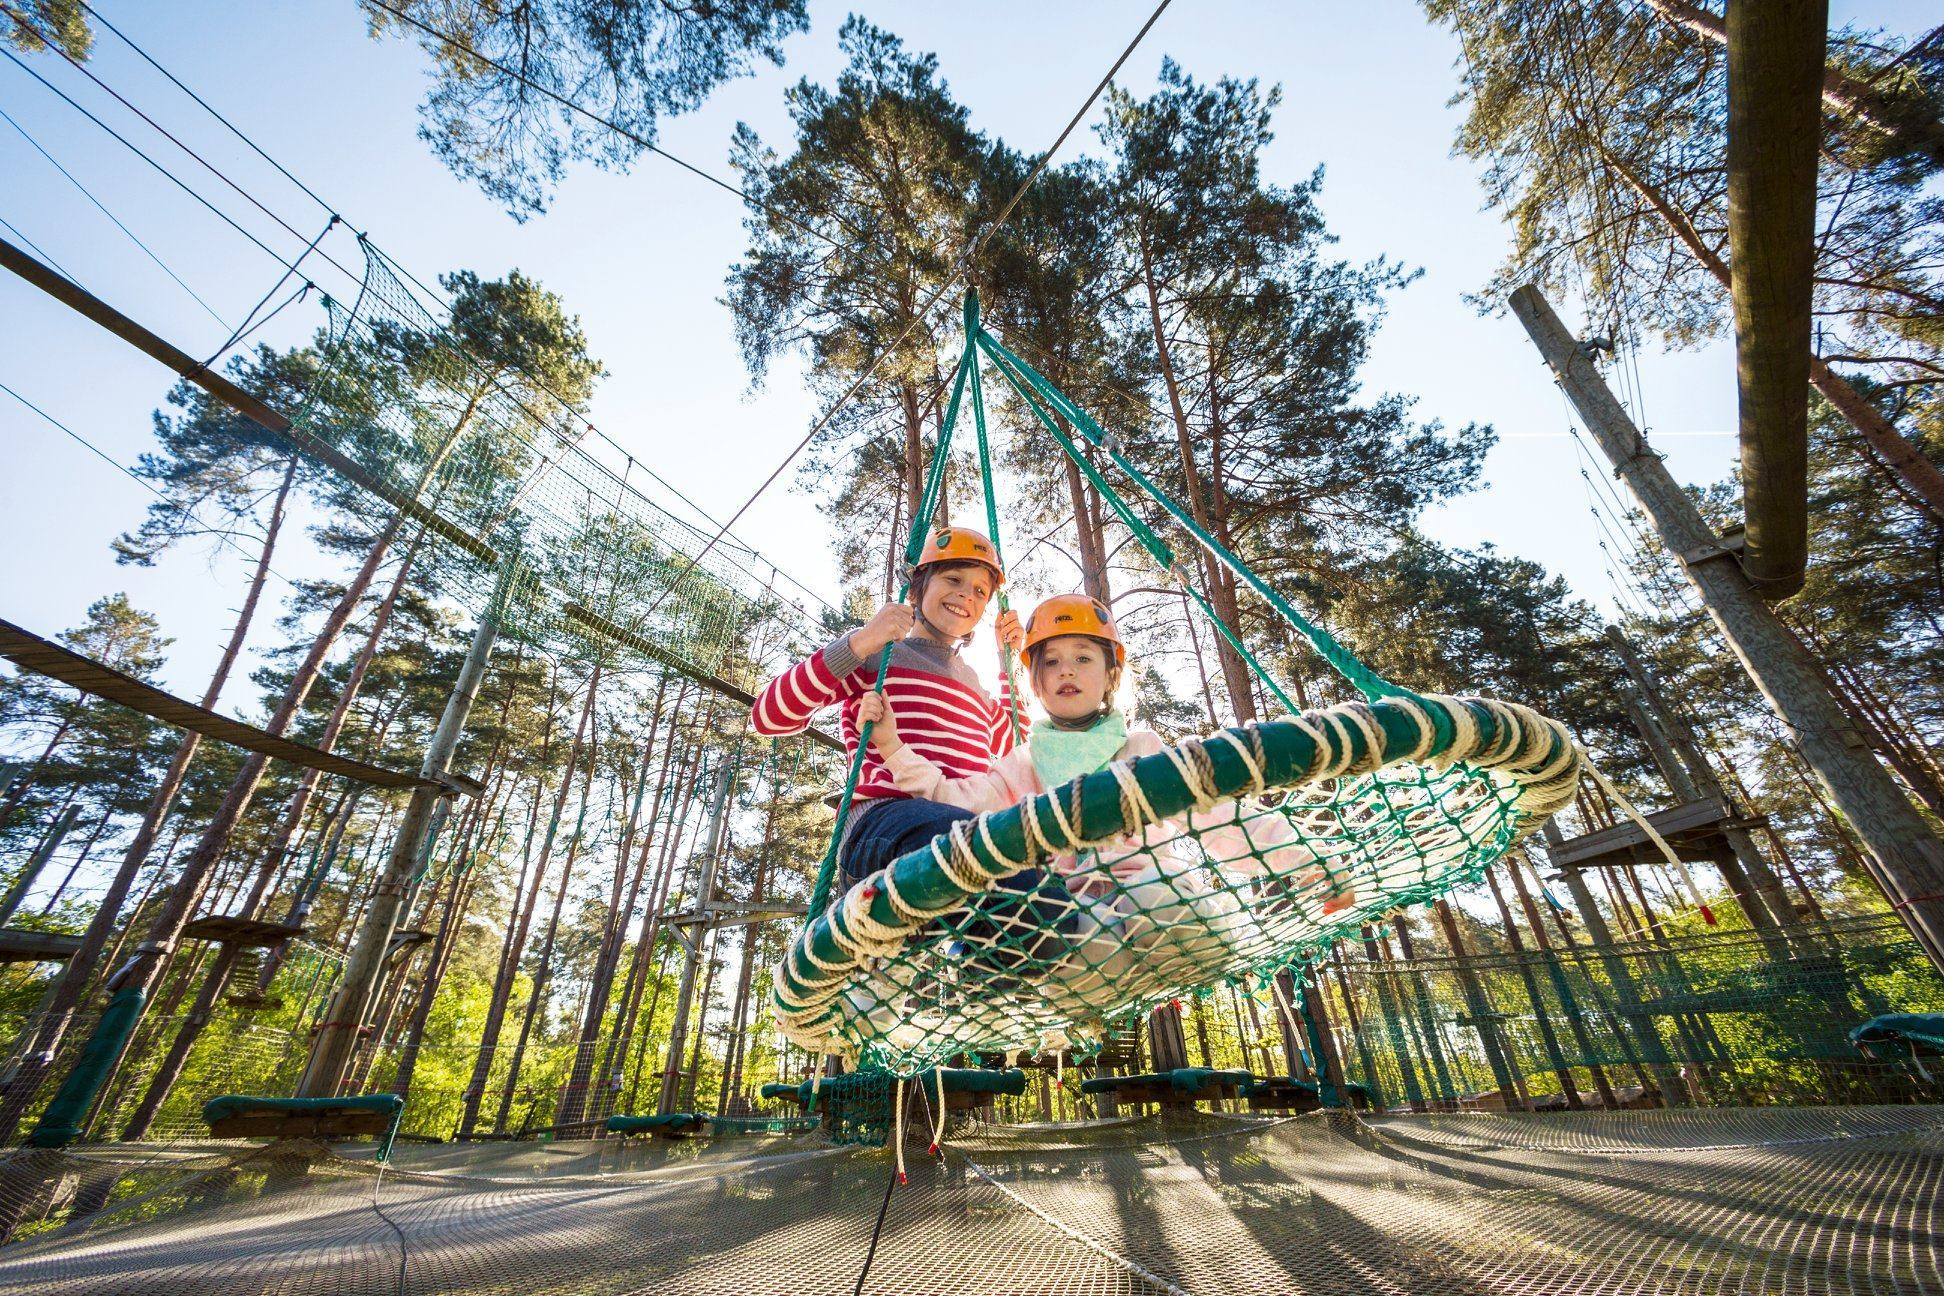 Kids' ropes course and swing